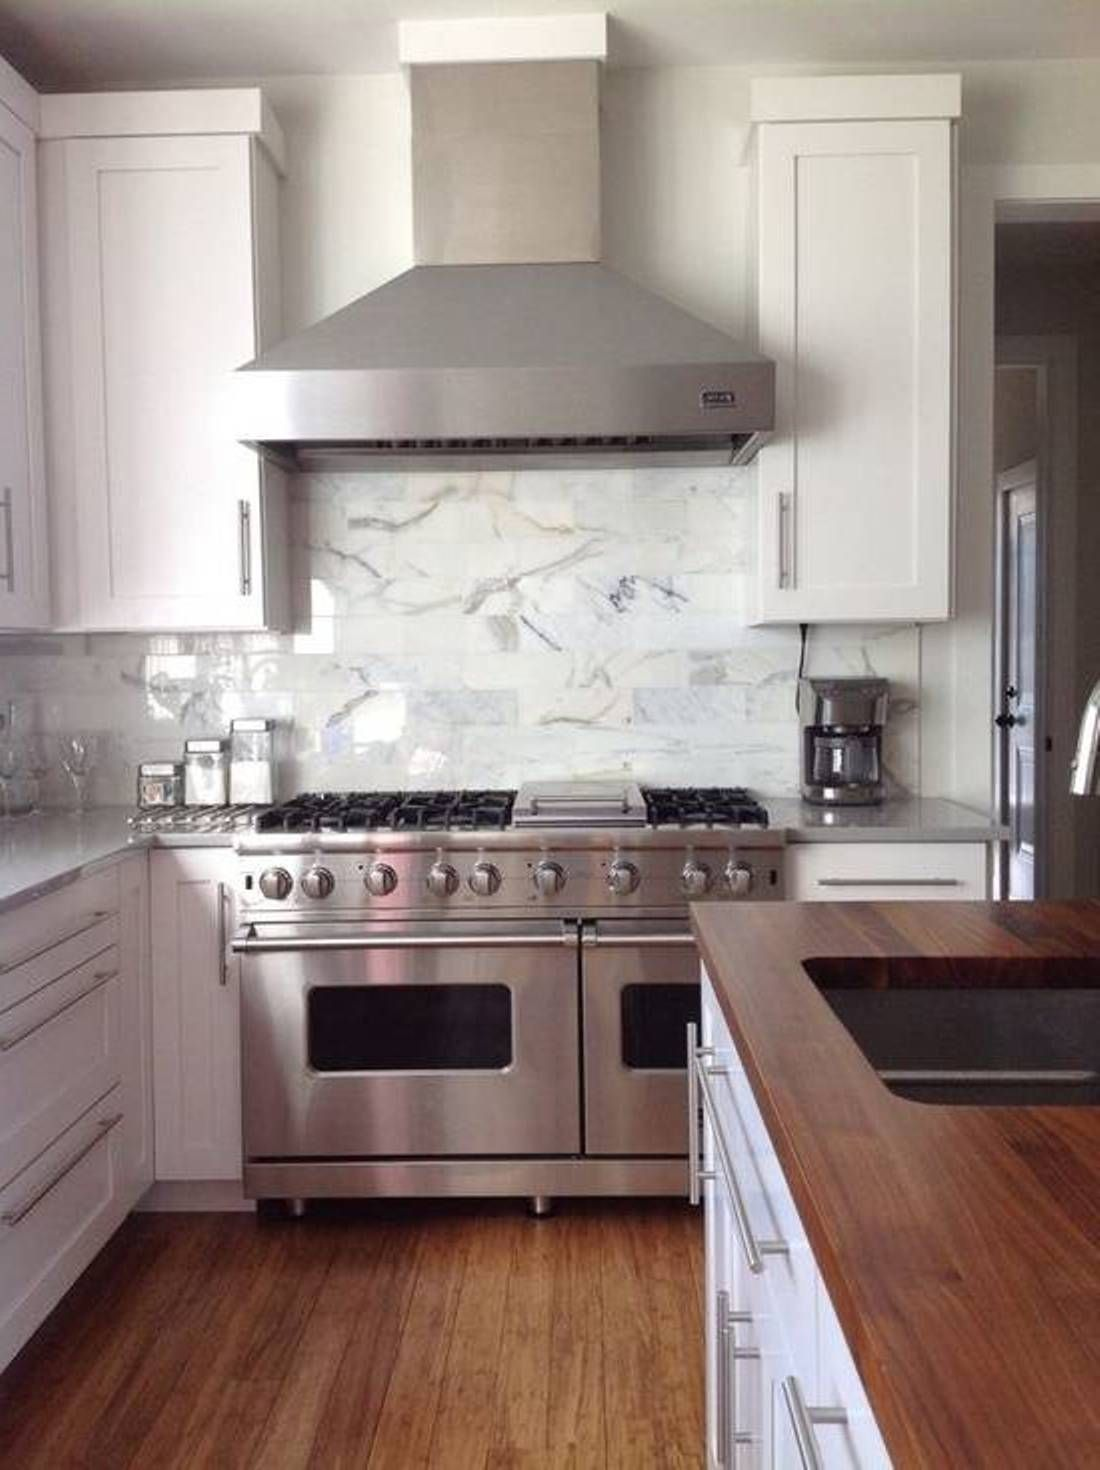 Best Admirable White Contemporary Kitchen Cabinet Design Idea 400 x 300